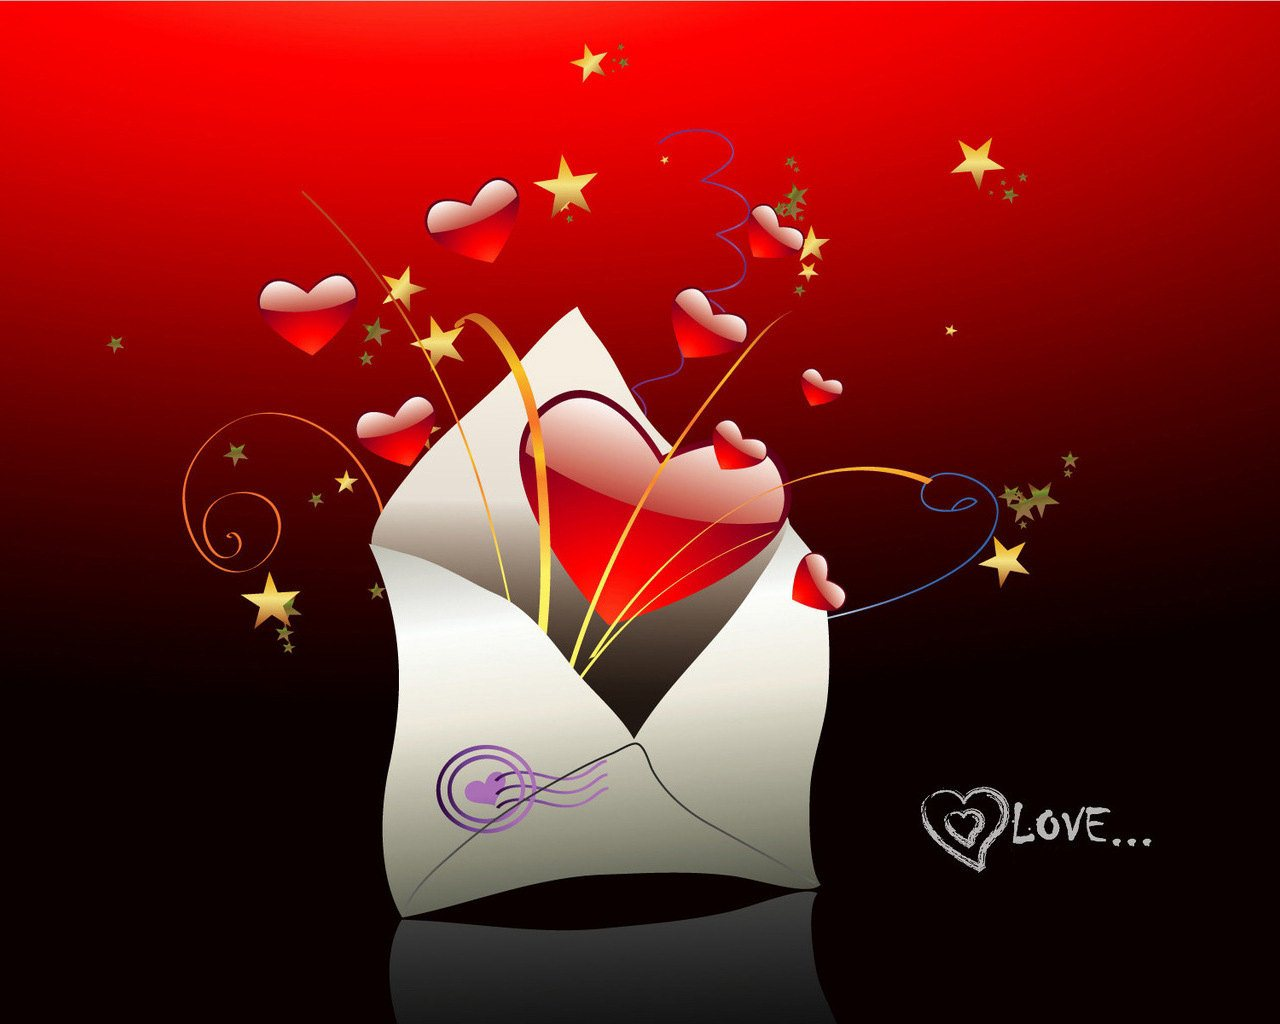 Love Images N Wallpapers